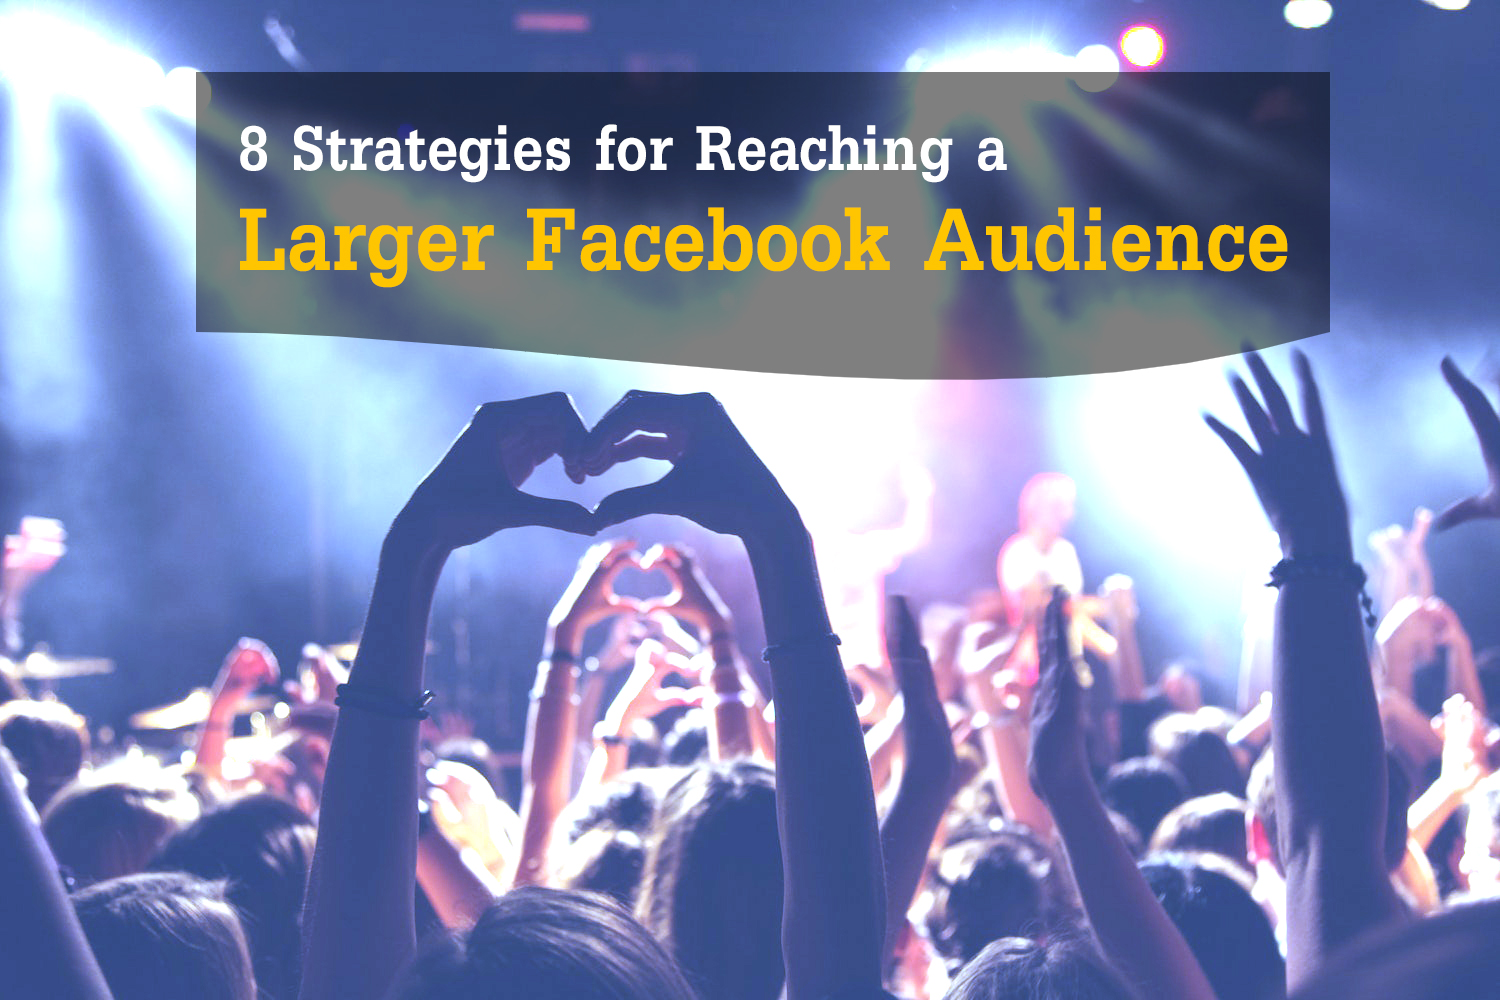 Larger Facebook Audience